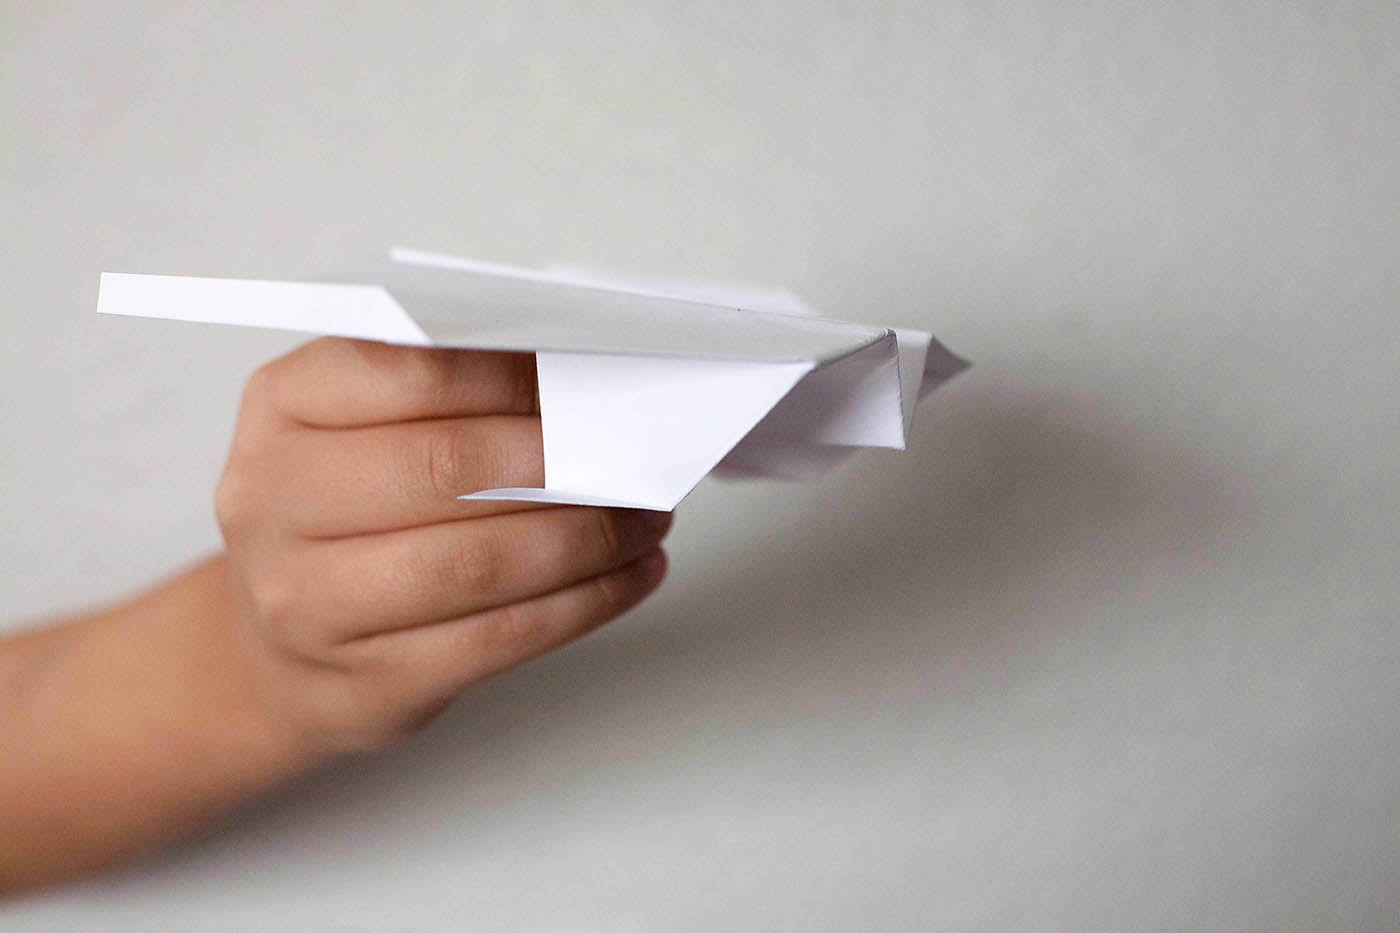 Paper plane with landing gear - how to at allfortheboys.com